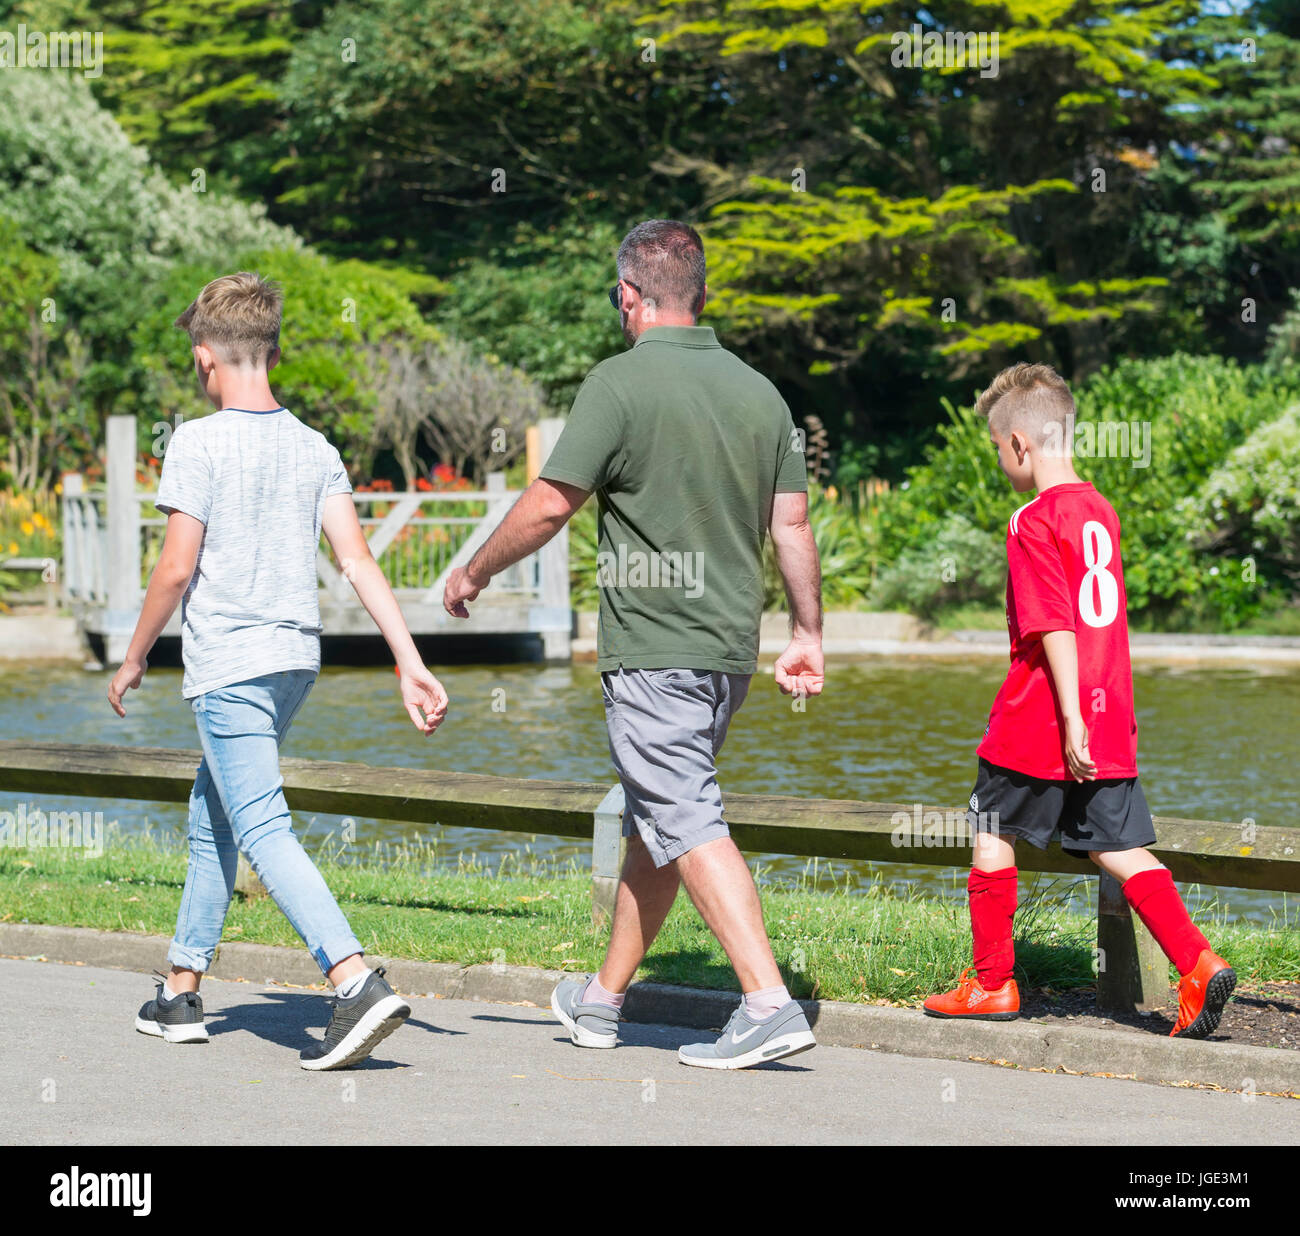 Father and Sons walking together through a park on a warm day in Summer. - Stock Image